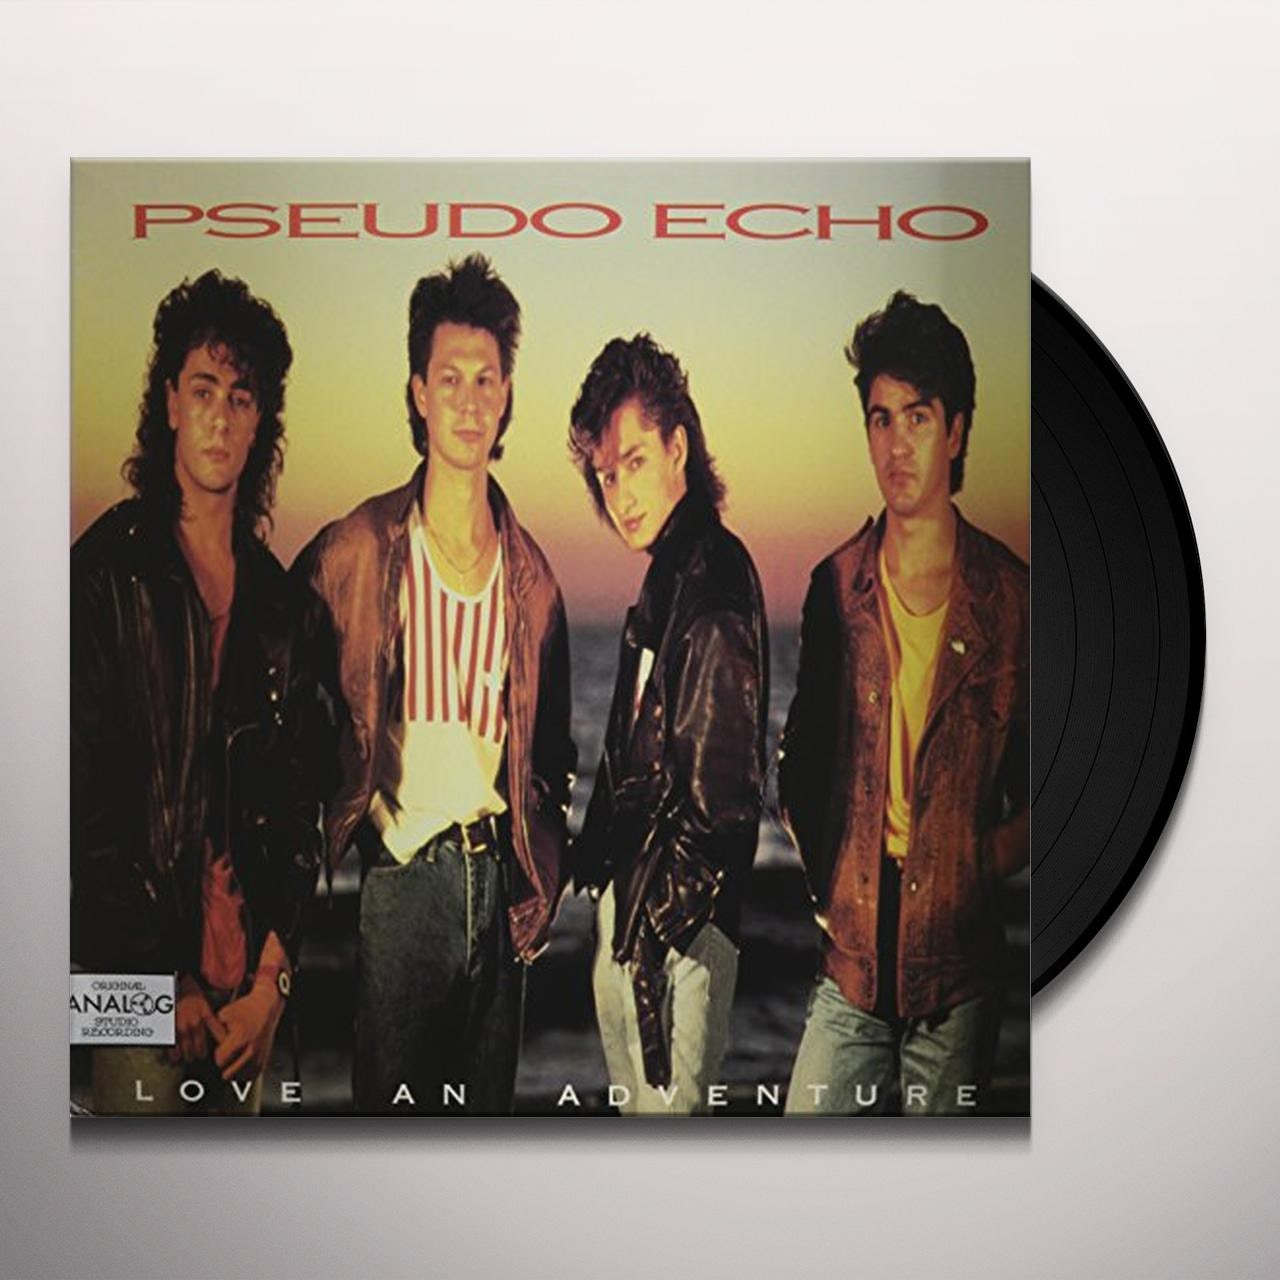 Psuedo Echo LOVE AN ADVENTURE (FUNKYTOWN) Vinyl Record